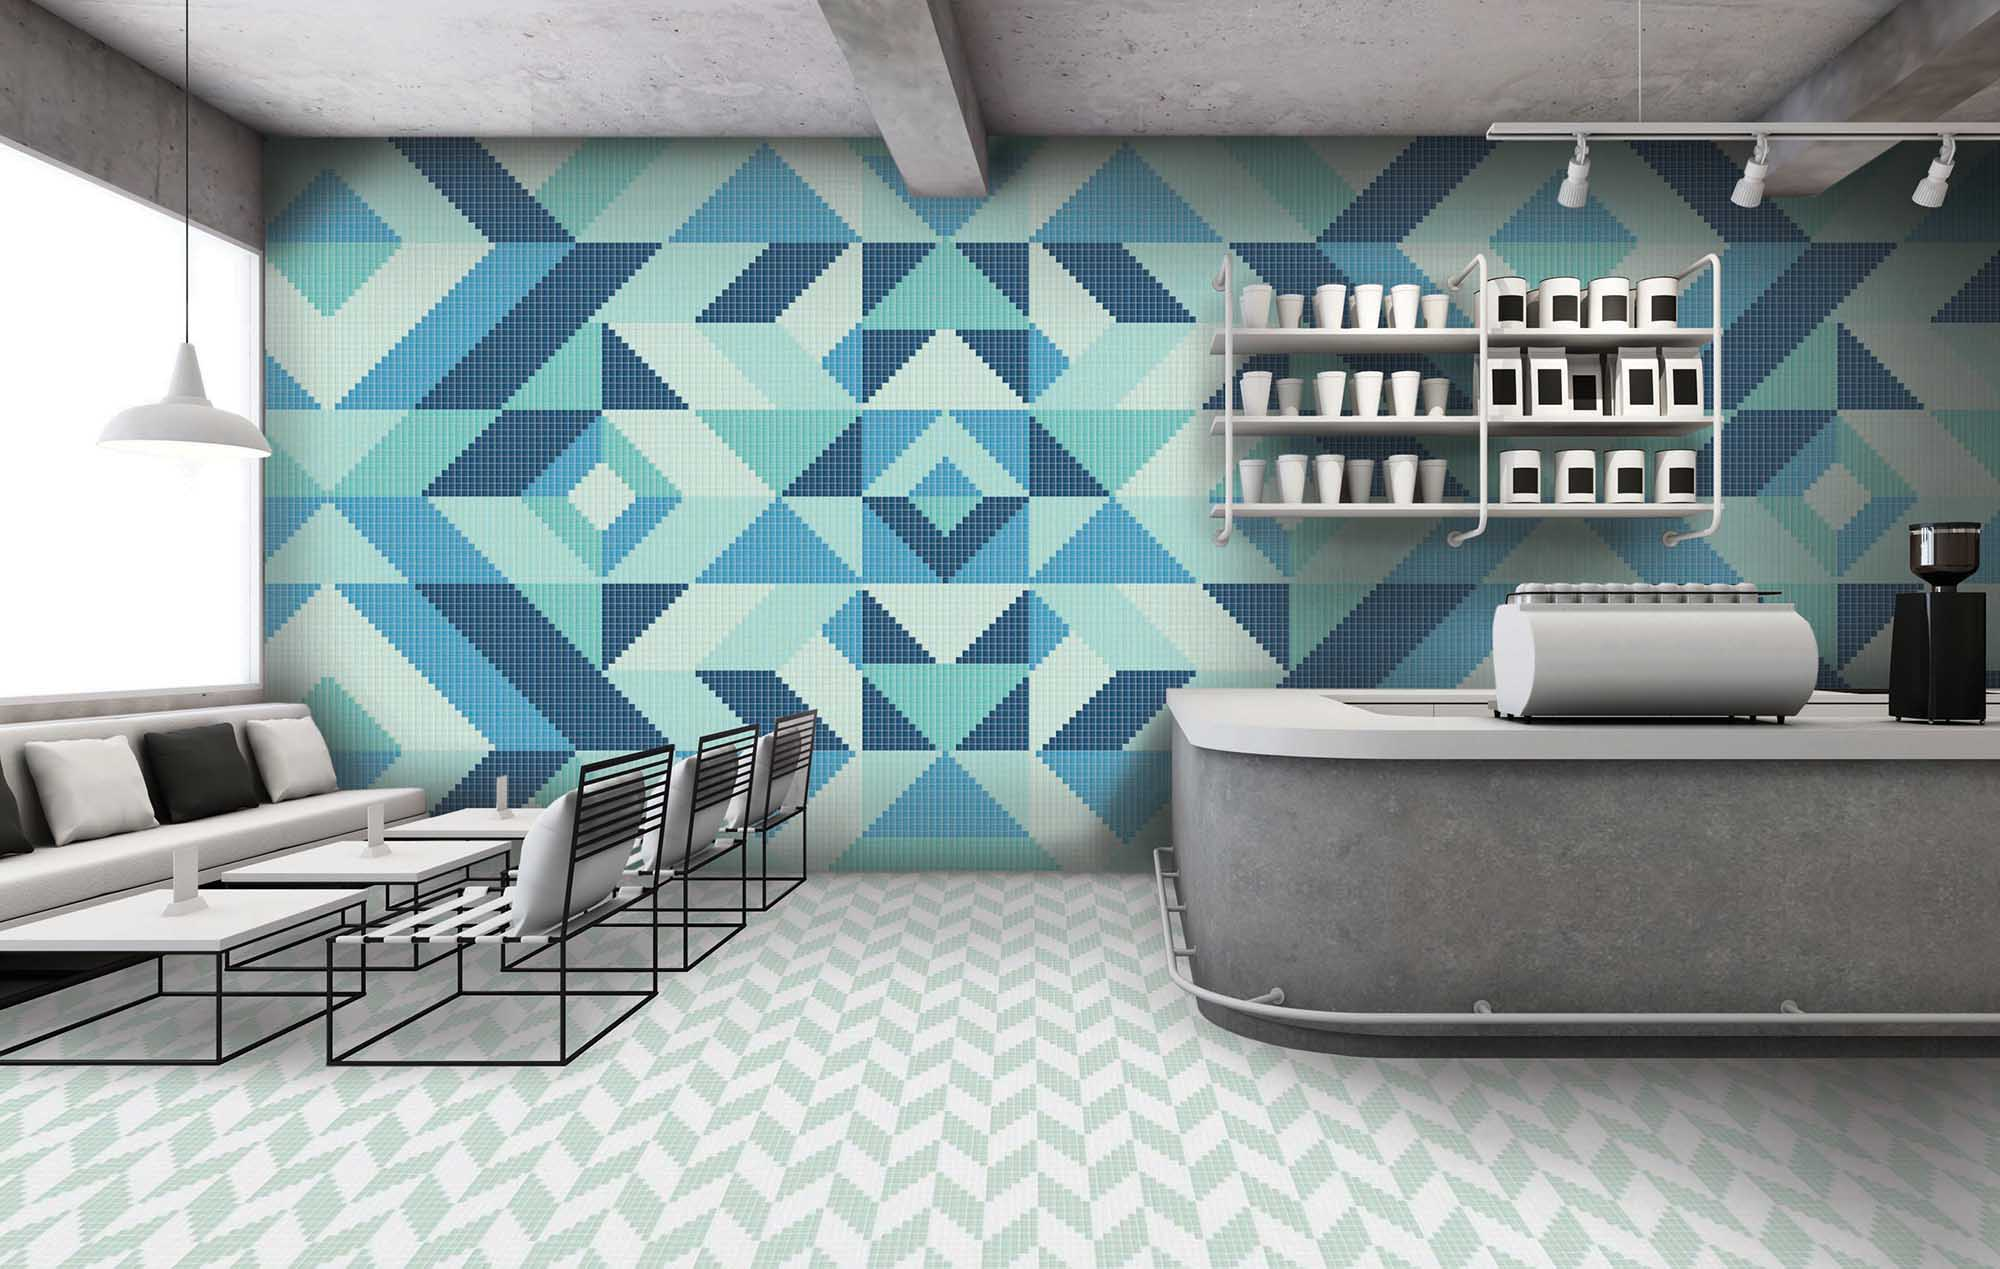 coffee-shop-blue-mosaic-tile-pattern-0-by-artaic-0420103-5